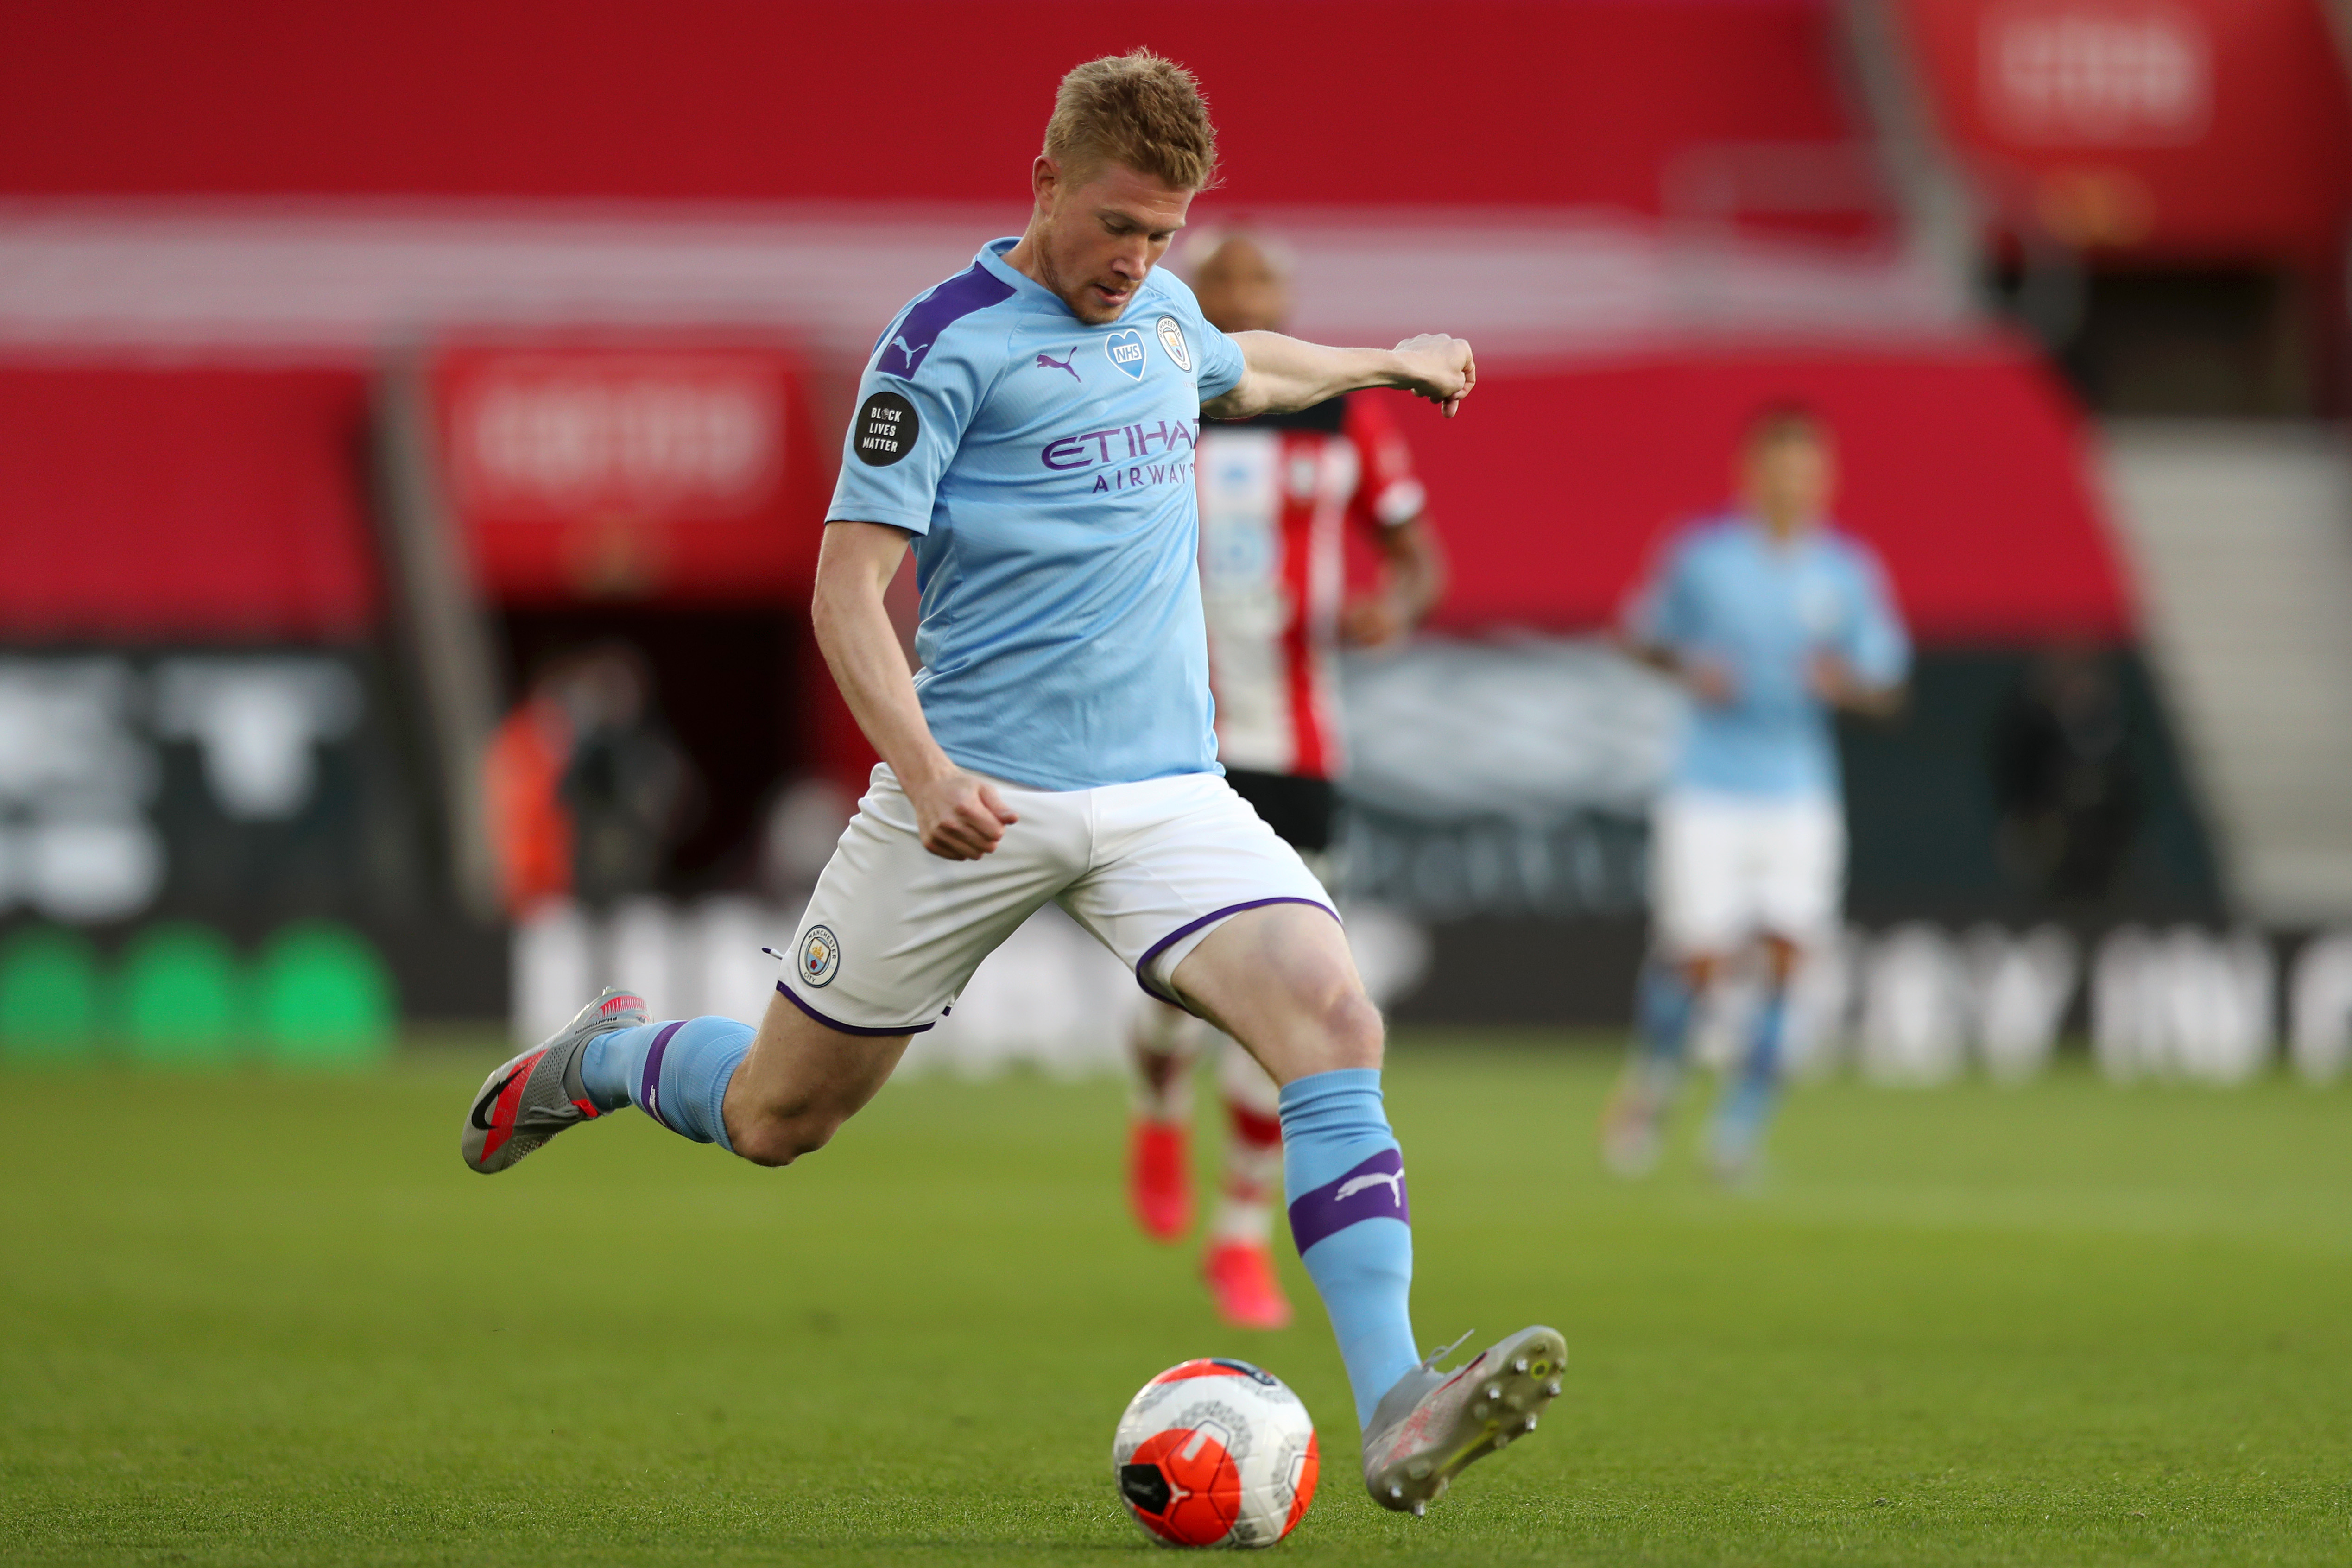 Kevin De Bruyne of Manchester City in action during the Premier League match between Southampton FC and Manchester City at St Mary's Stadium on July 5.